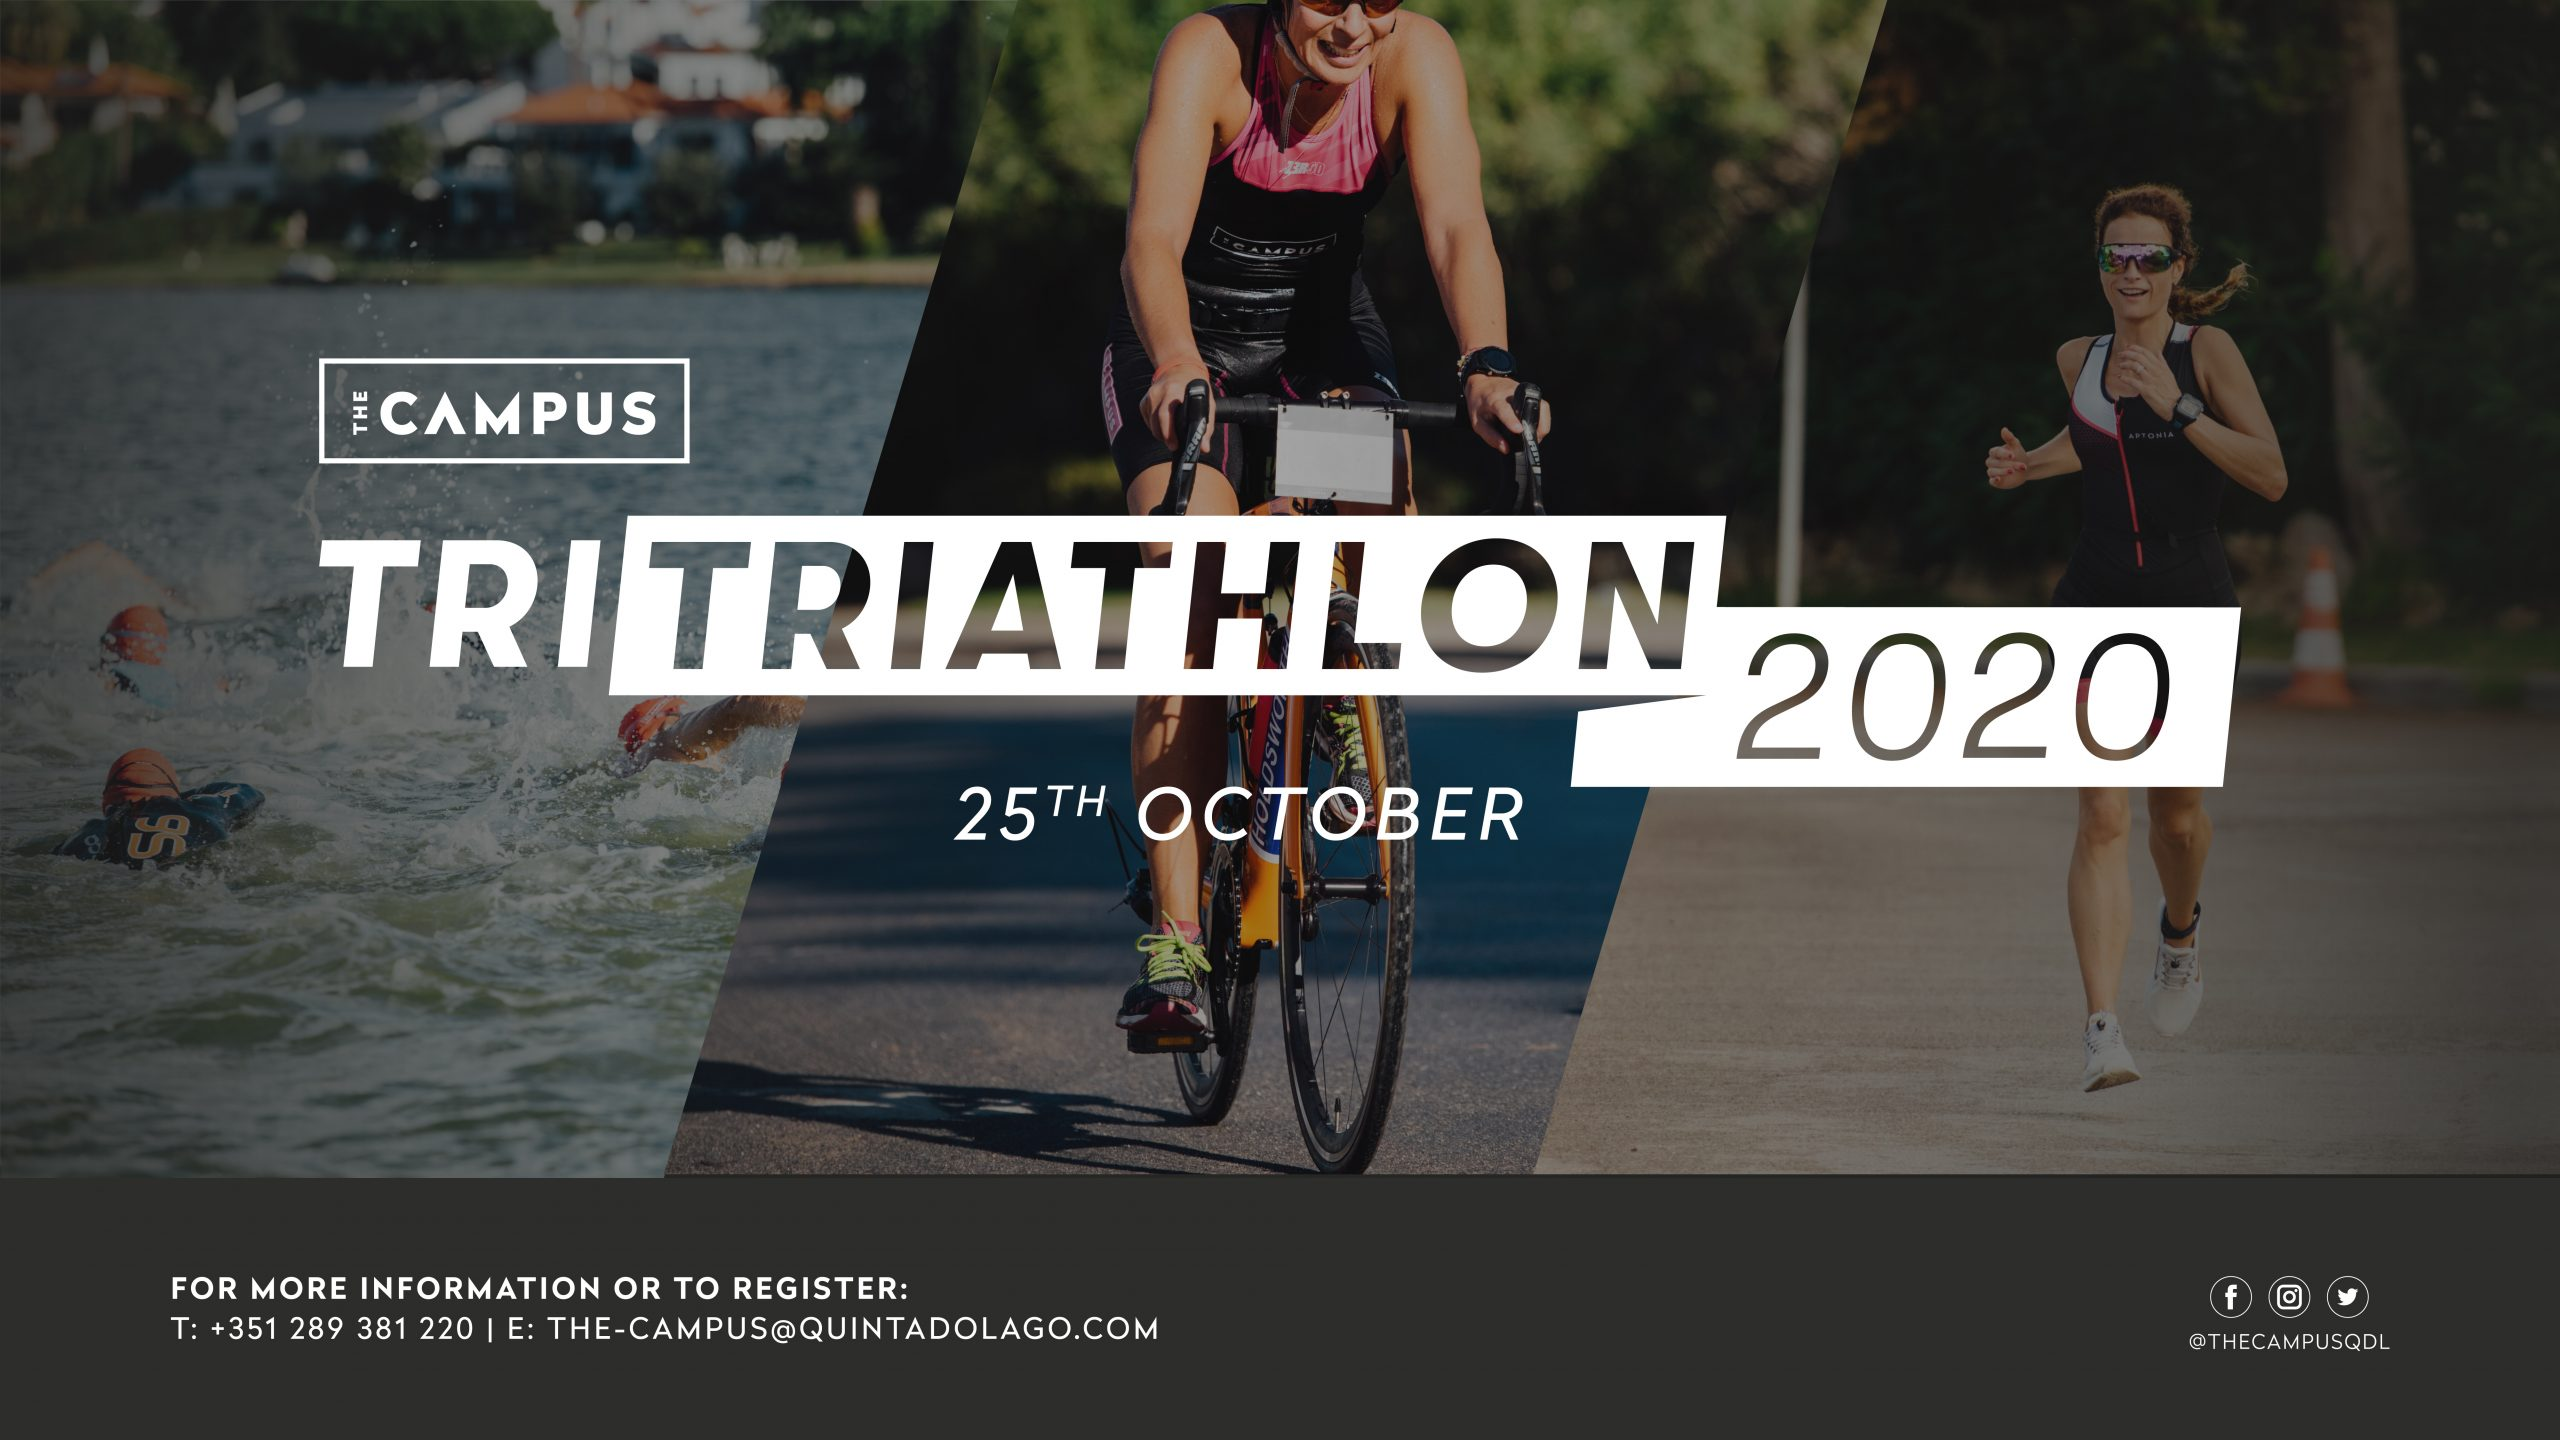 Tri Triathlon 2020 – The Campus